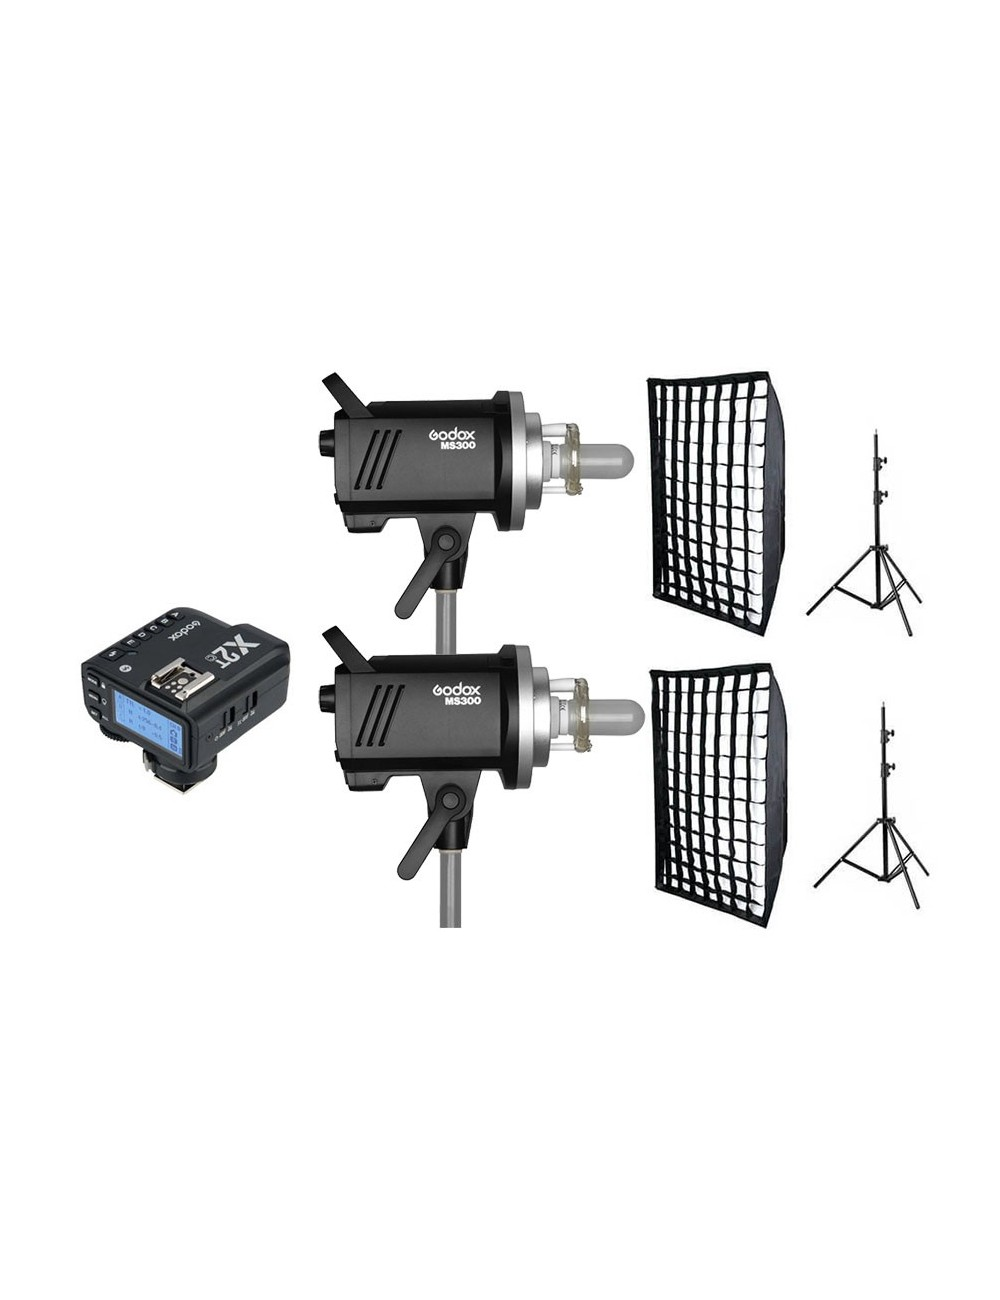 Kit 2 Godox MS300 flashes de estudio y accesorios Nikon